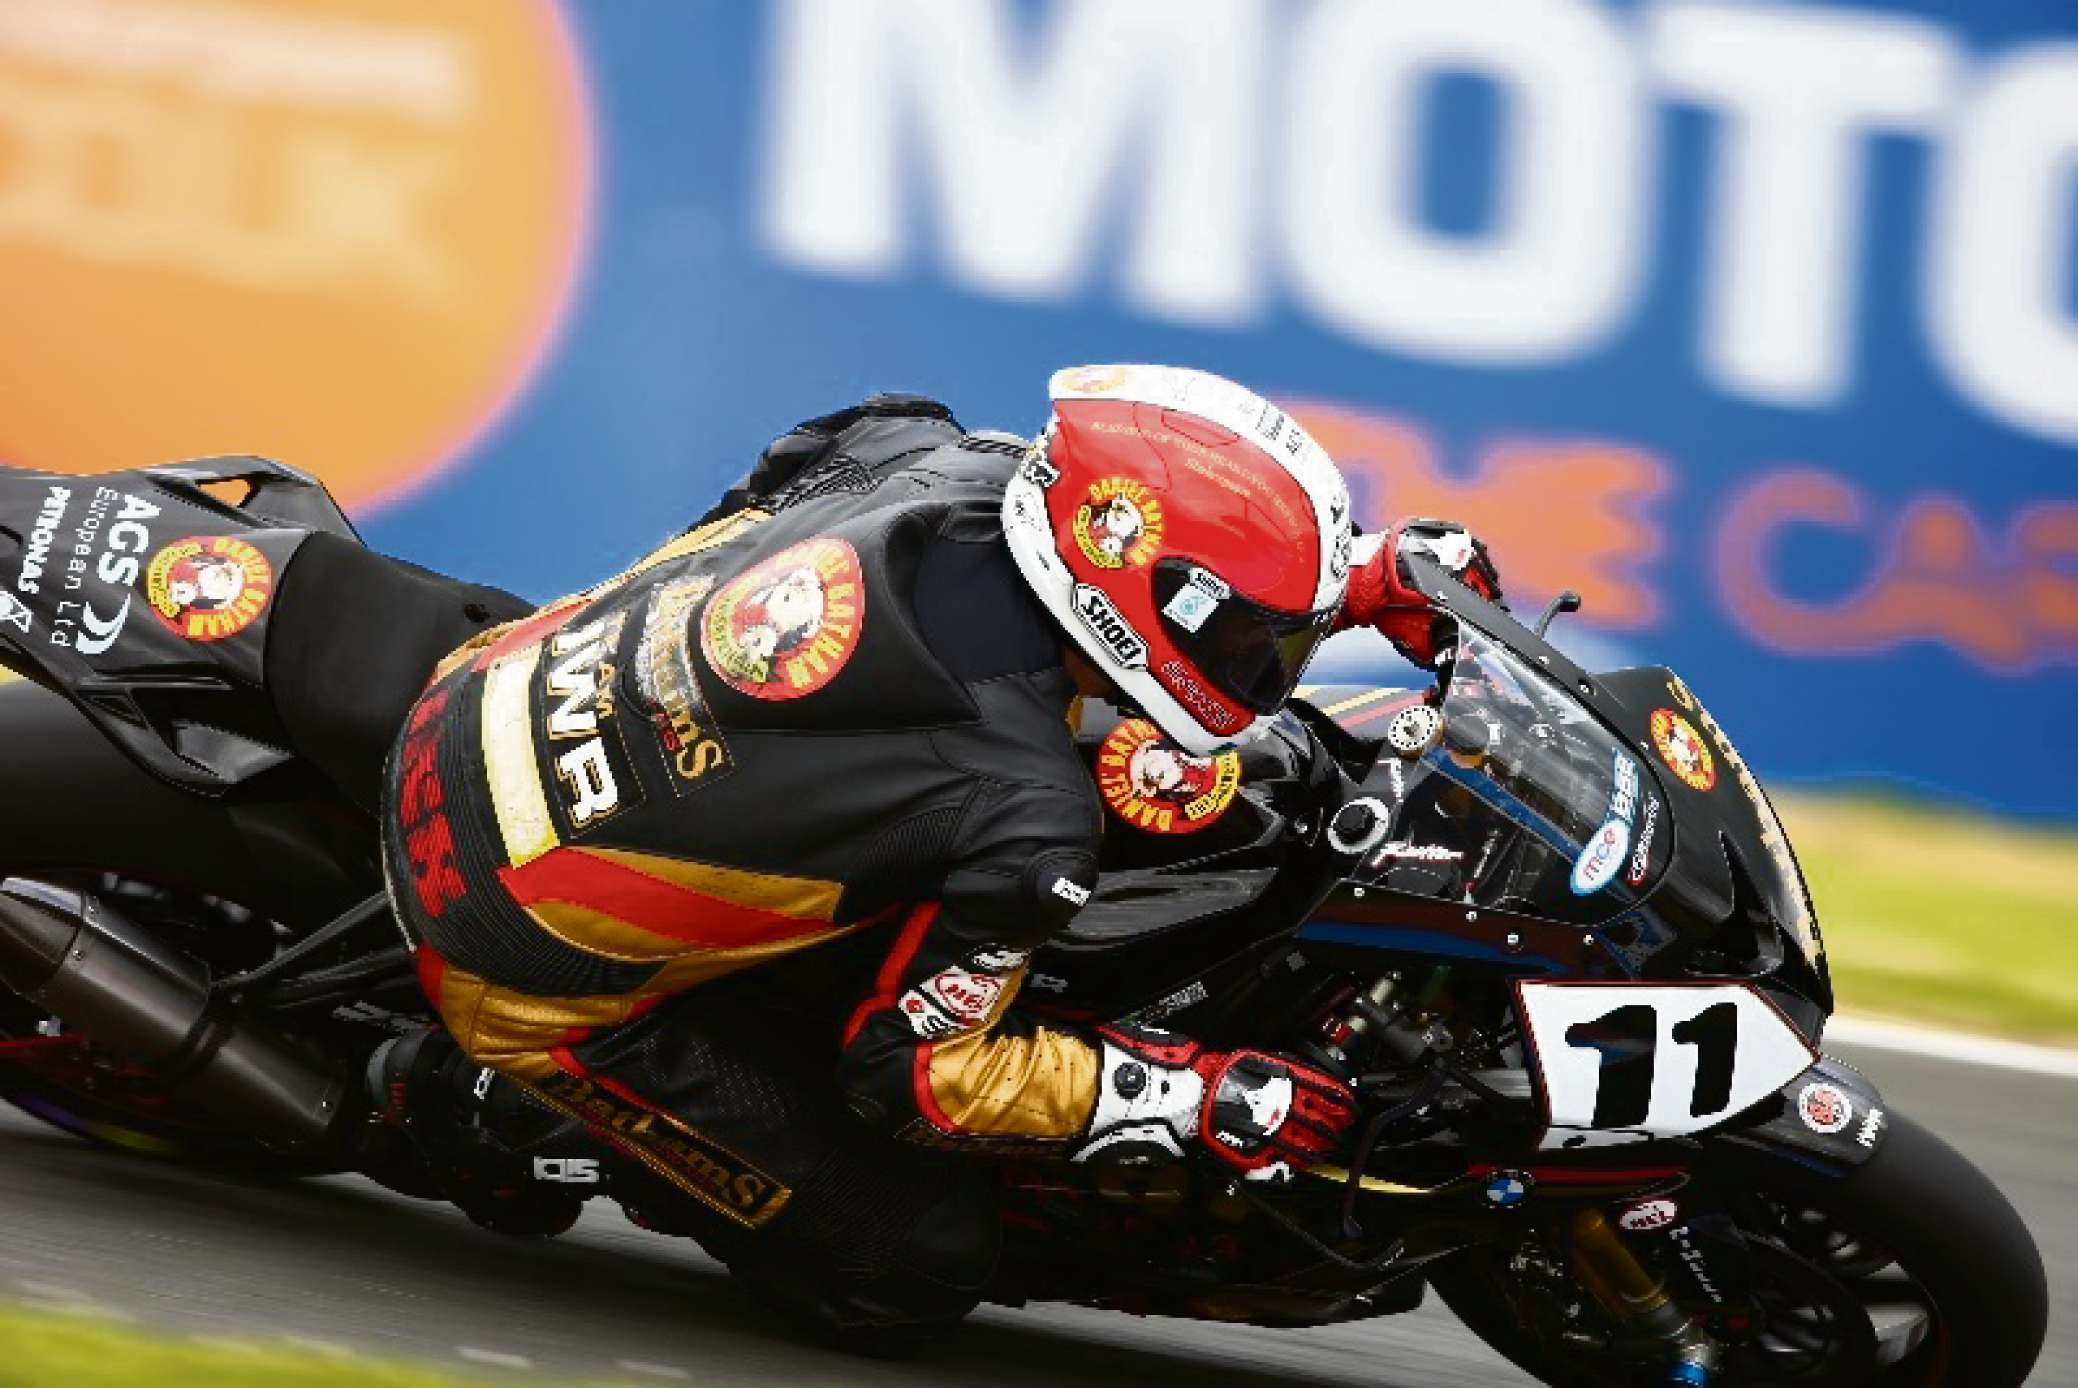 Rutter in action at Knockhill. Photo by Double Red.